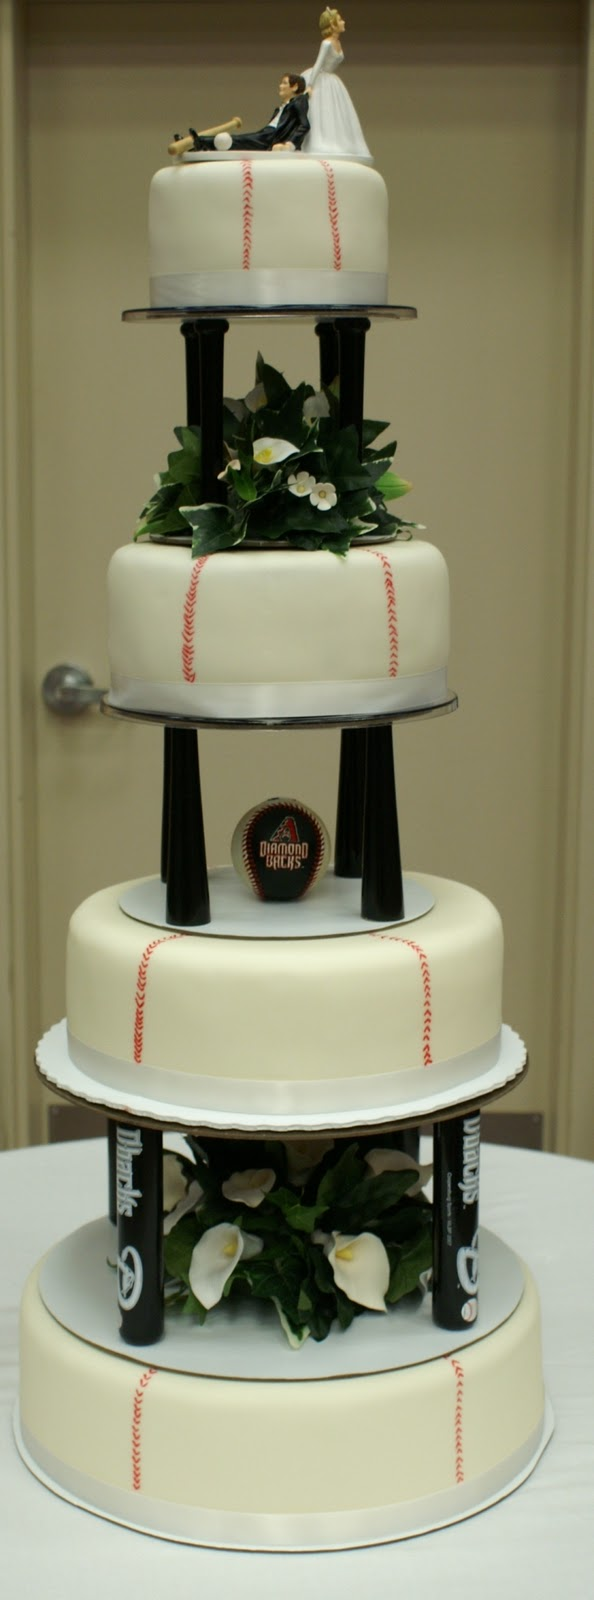 Pace Of Cakes Baseball Theme Wedding Cake